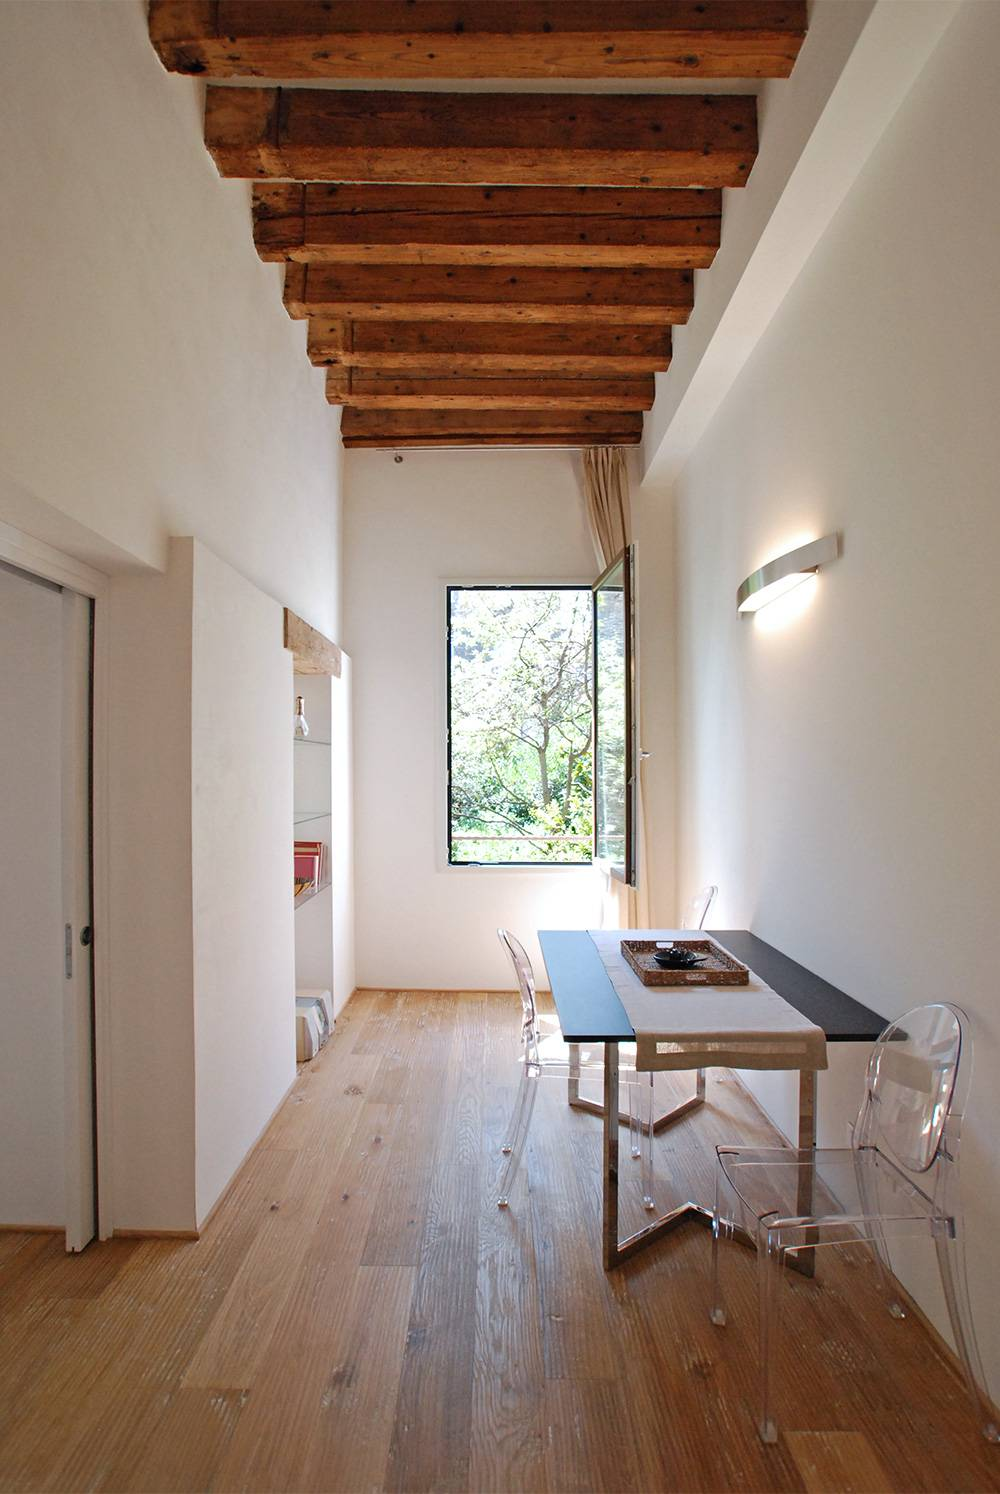 high ceilings with ancient wooden beams and brushed parquet flooring confer warmth to the ambience